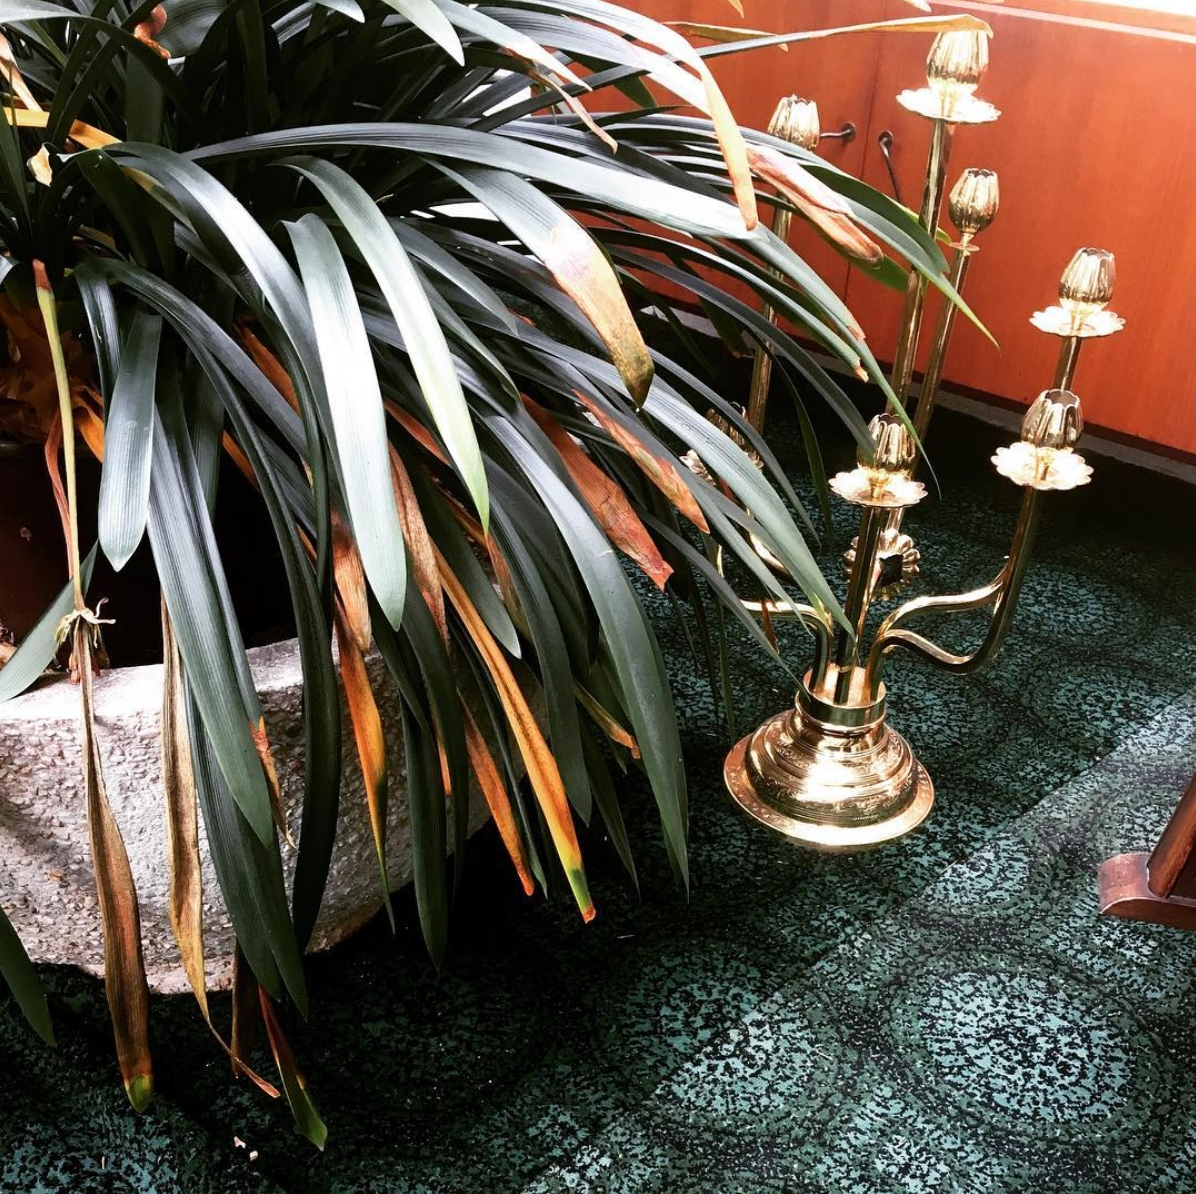 Beautiful details #parkhotel1970 🌿 #plants #plantlover #interior #hotel #details